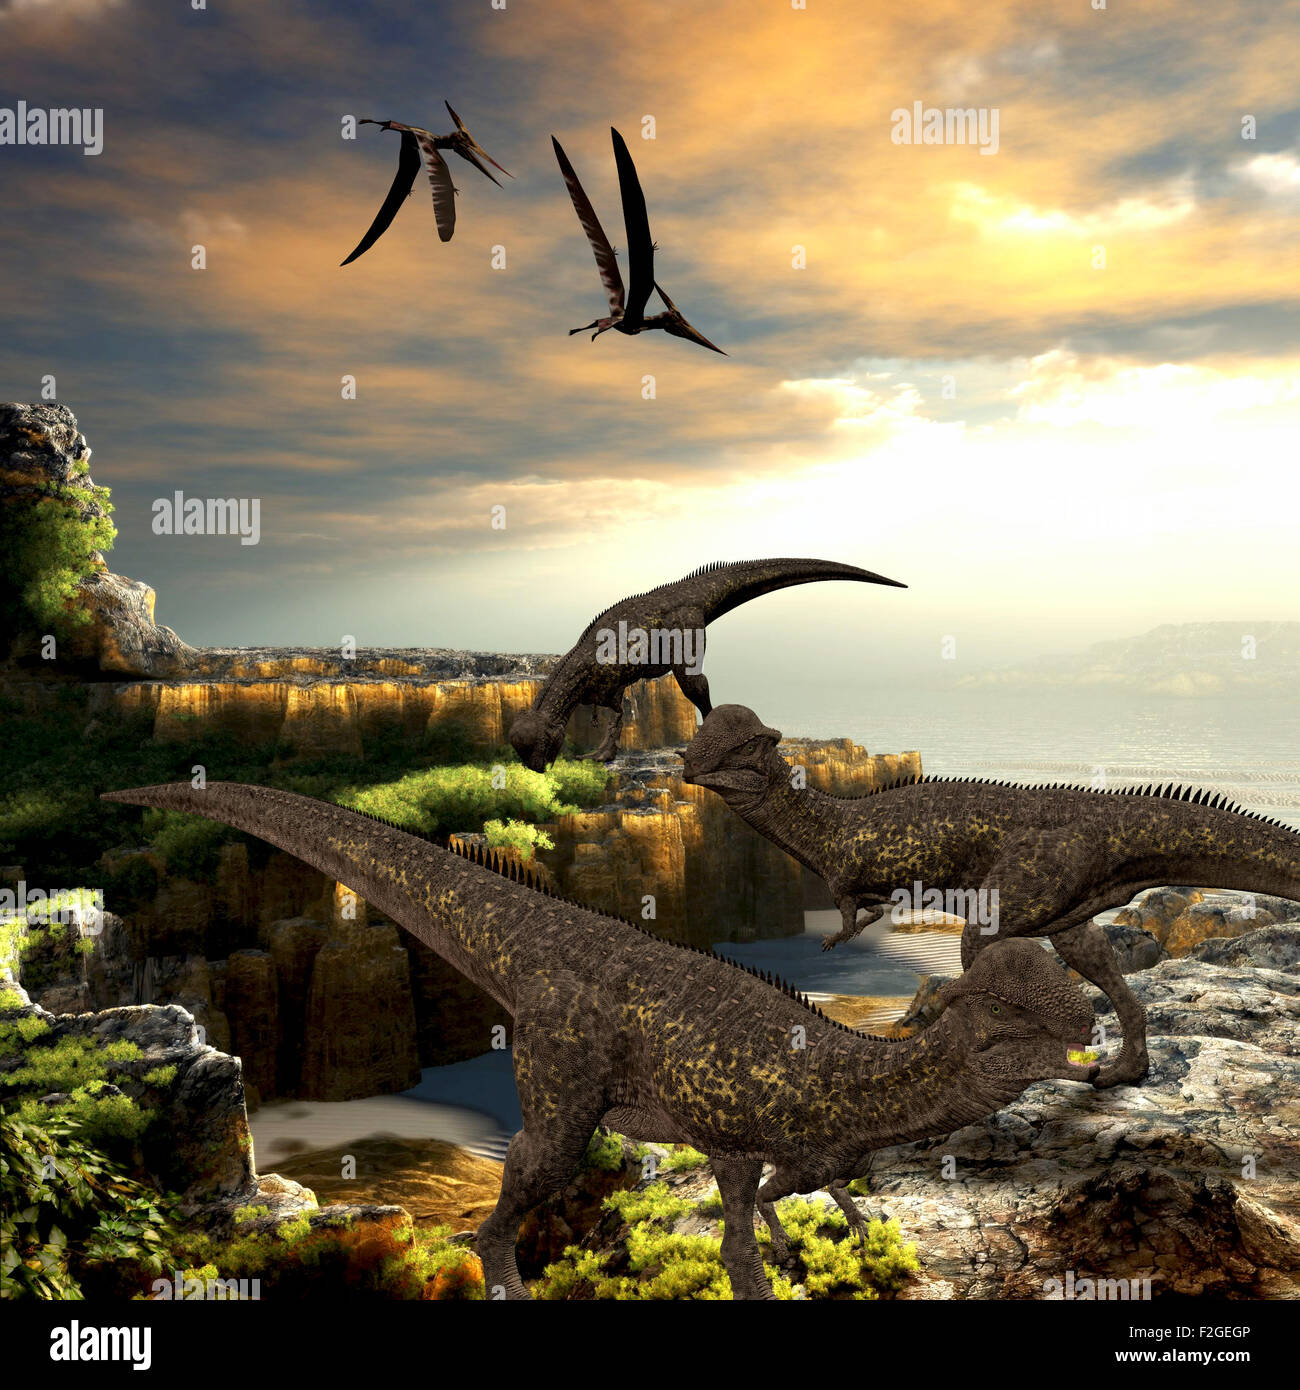 Stegoceras dinosaurs eat the vegetation along a rocky coast as Pteranodon reptiles fly overhead. - Stock Image